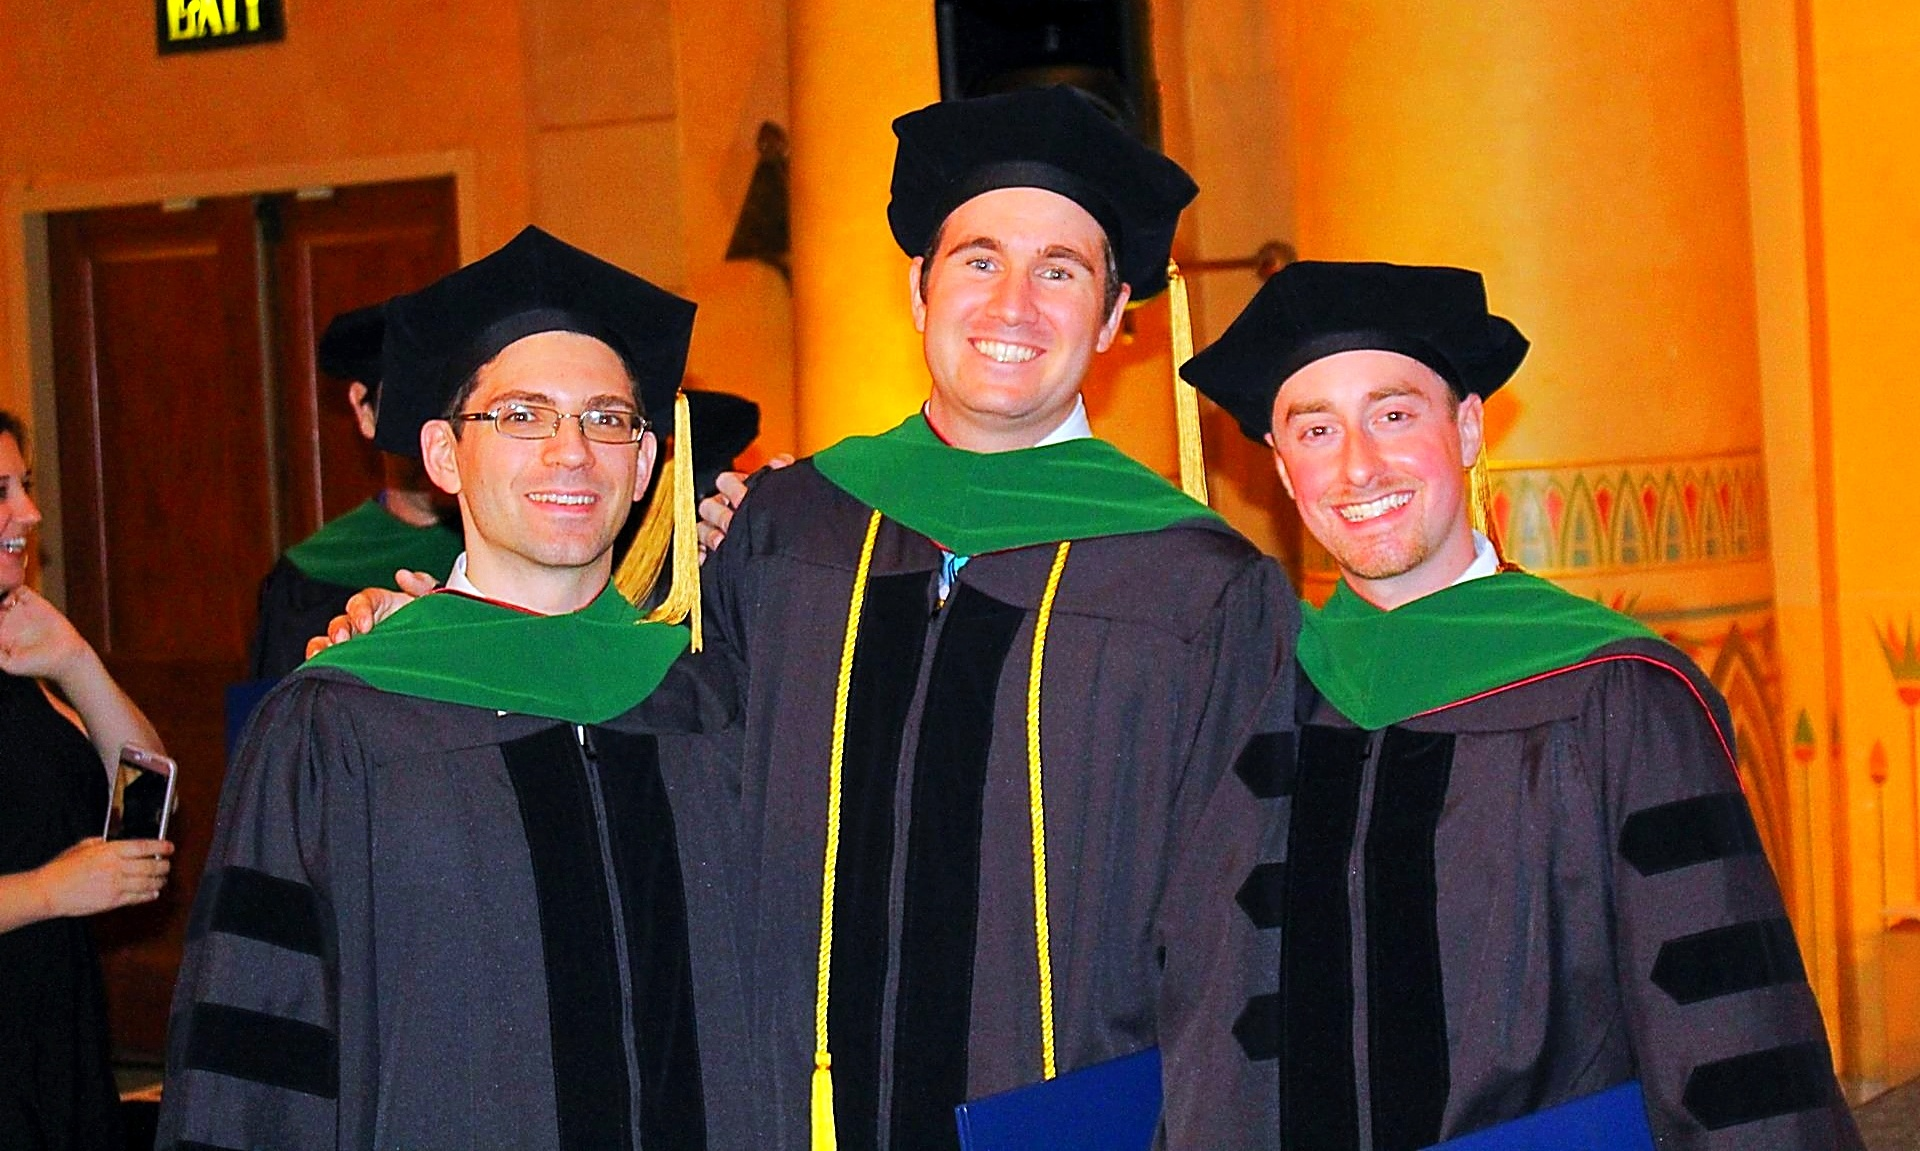 Trinity School of Medicine graduates celebrating their new, official status as physicians